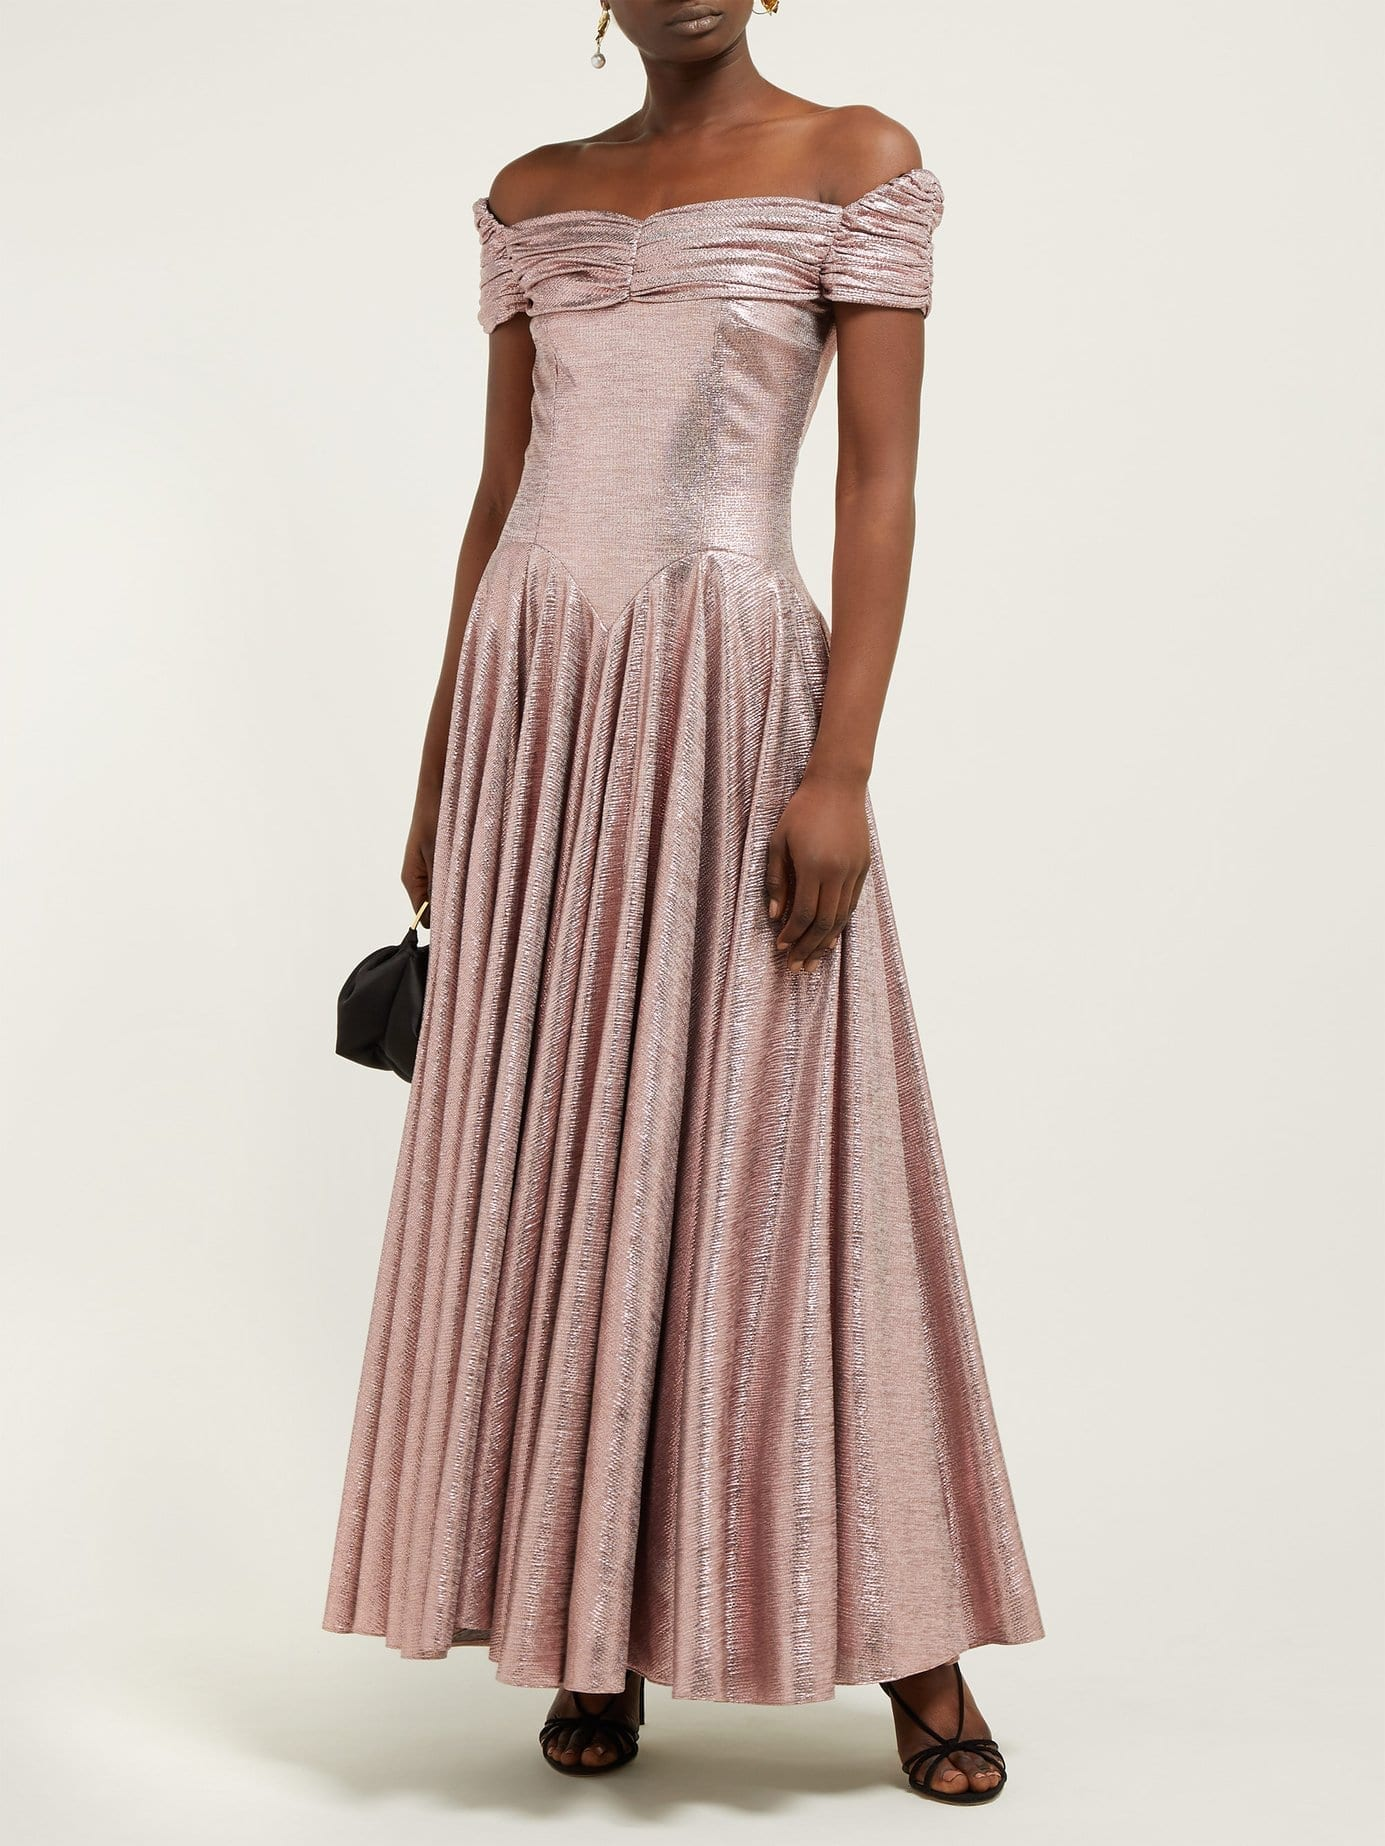 EMILIA WICKSTEAD Nicoletta Off-The-Shoulder Lamé Pink Gown